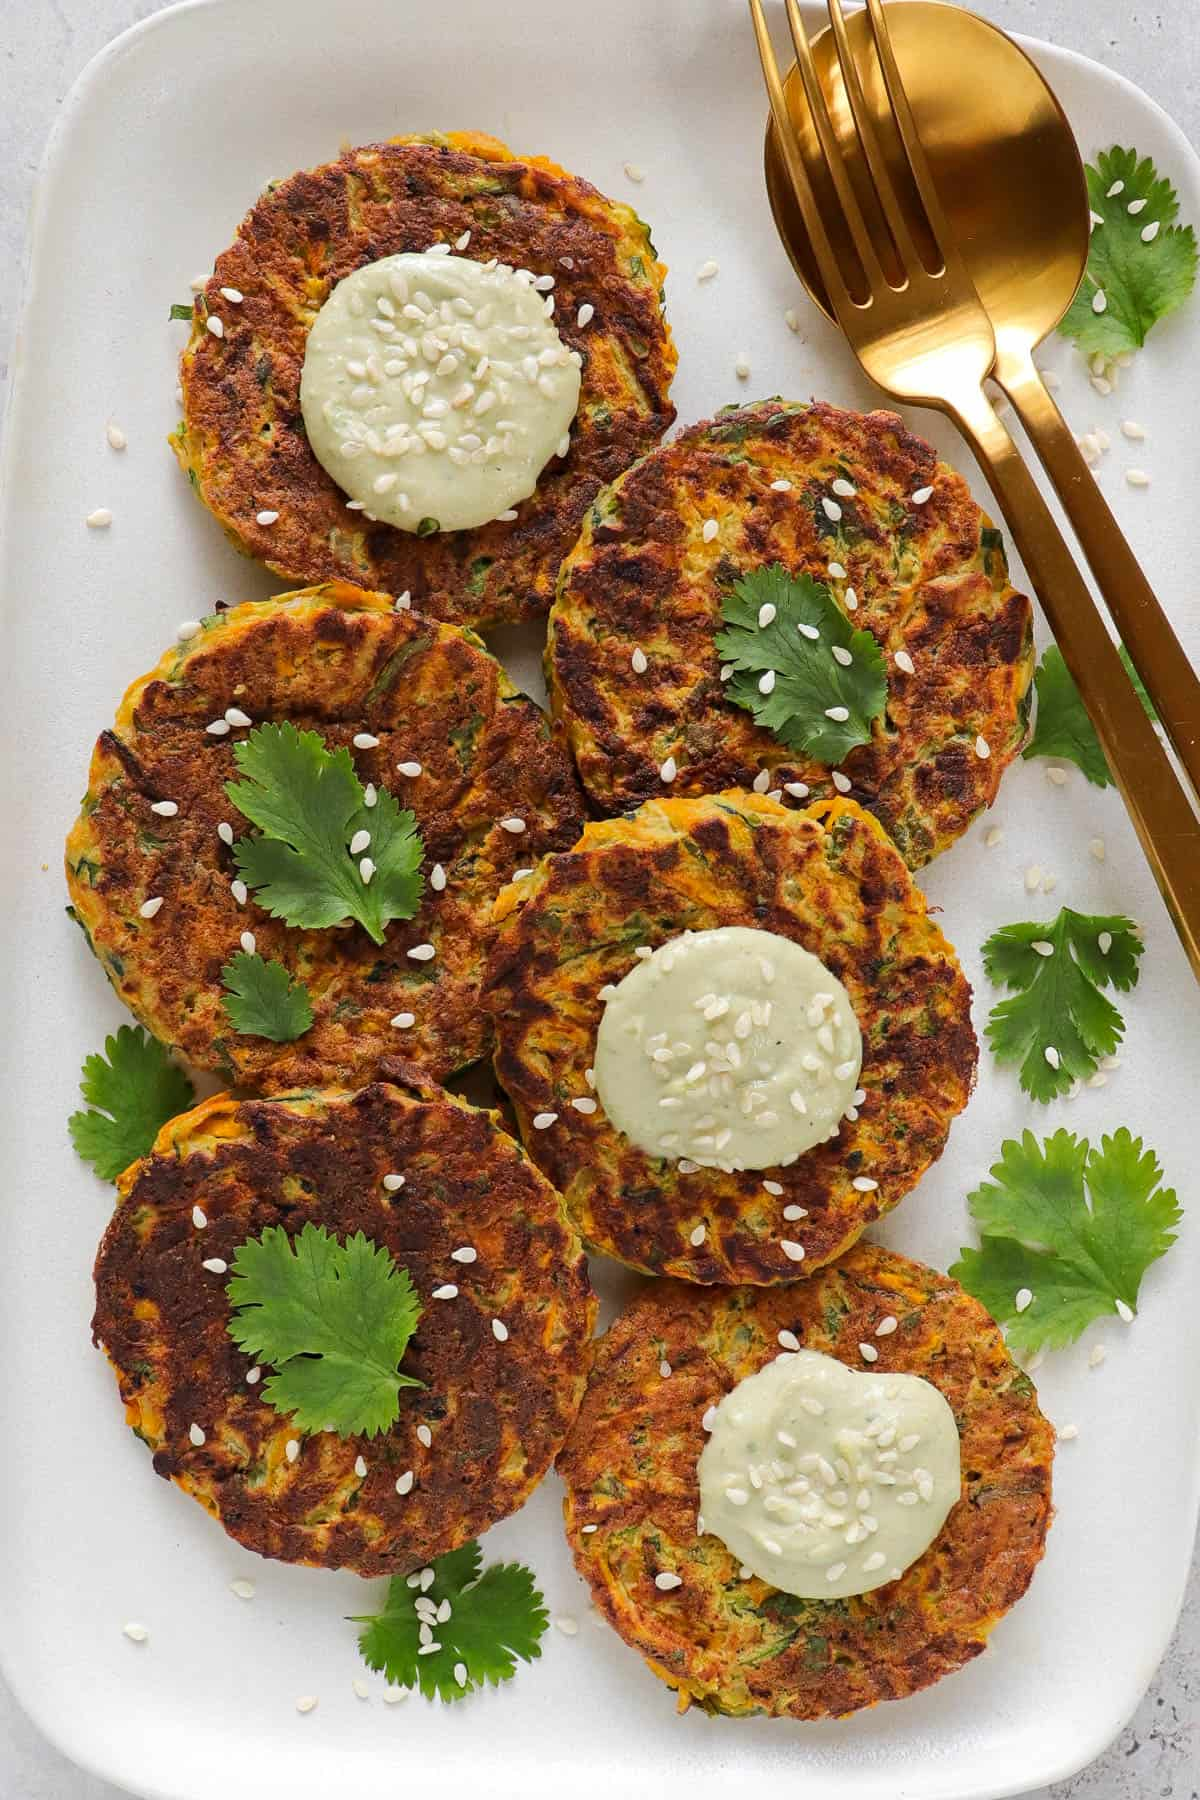 Patties on a rectangle plate with coriander leaves, sesame seeds, avocado dip and gold cutlery on the side.